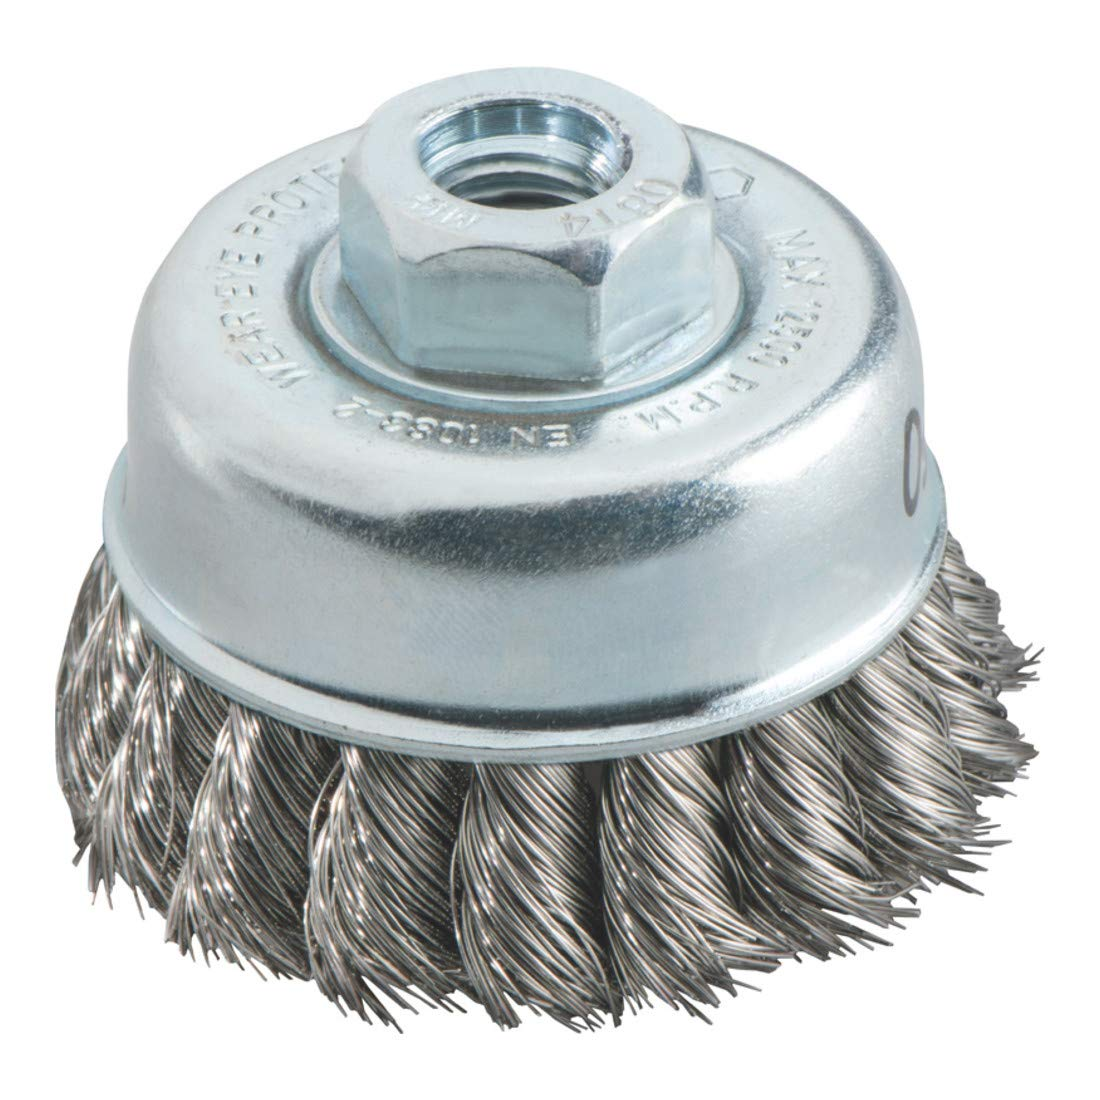 Metabo 623711000 Steel-Wire Cup Brush, Green, 100 mm M14